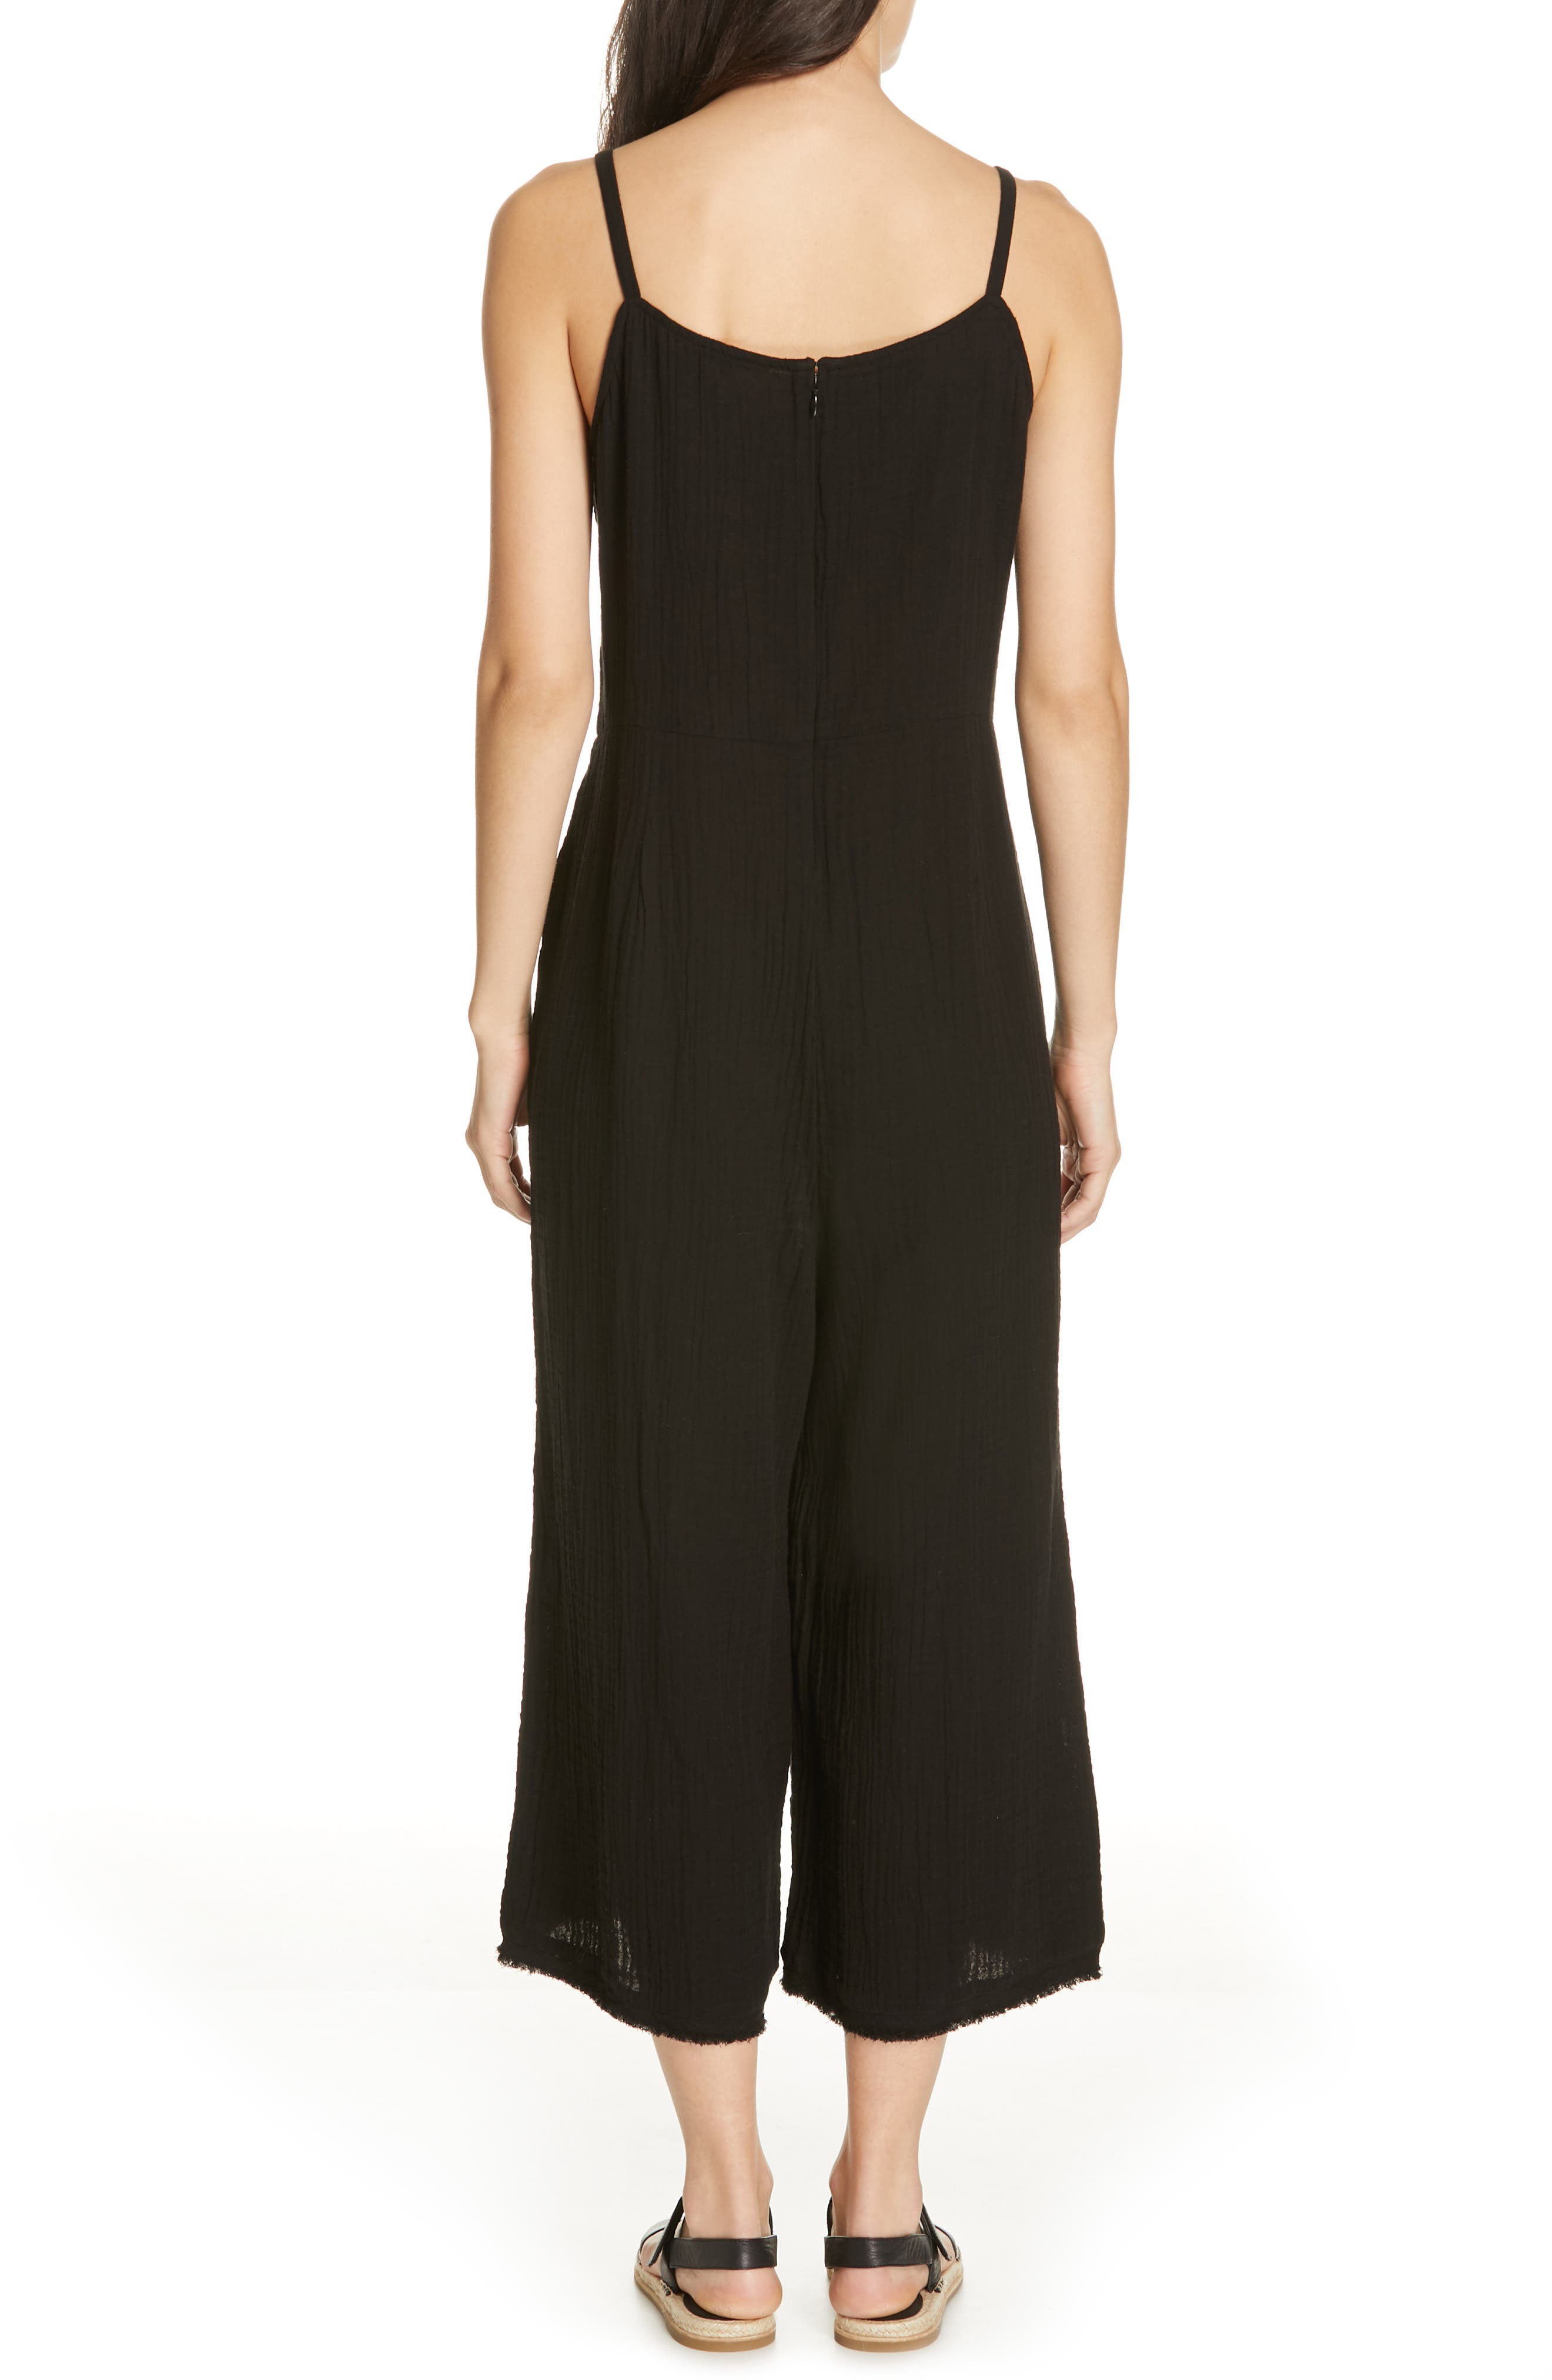 EILEEN FISHER, Camisole Jumpsuit, Alternate thumbnail 2, color, 001